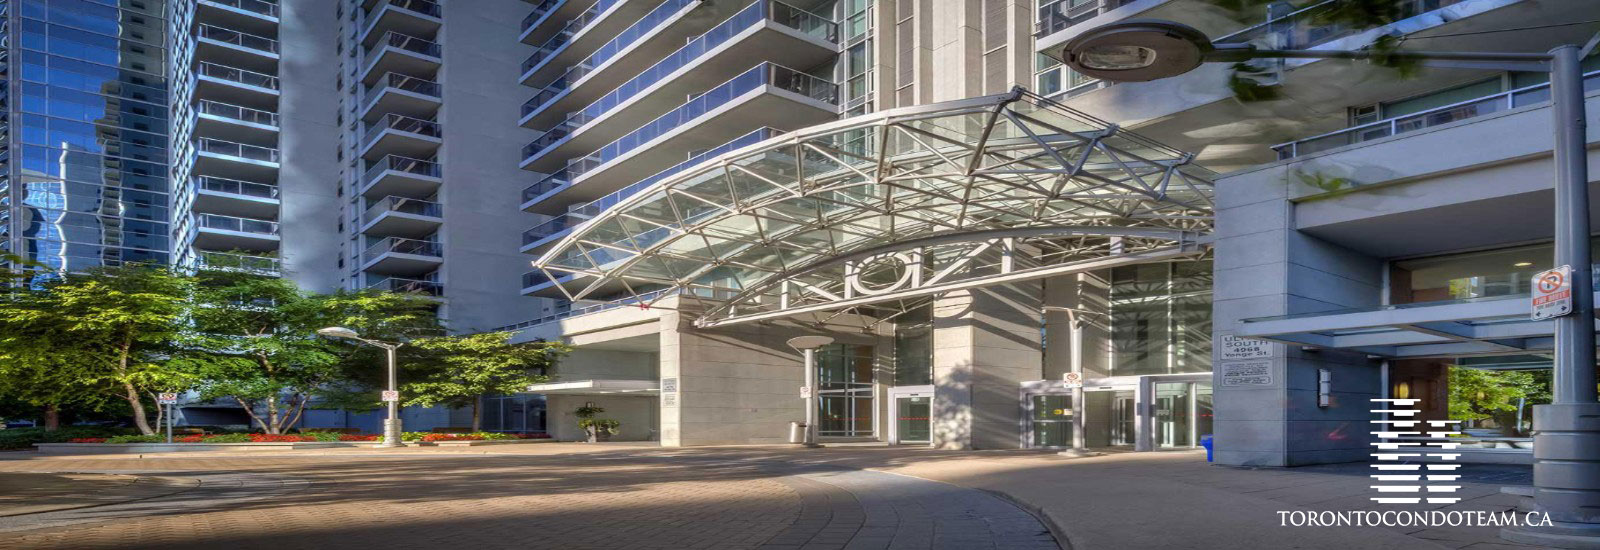 4978 Yonge Street Condos For Sale